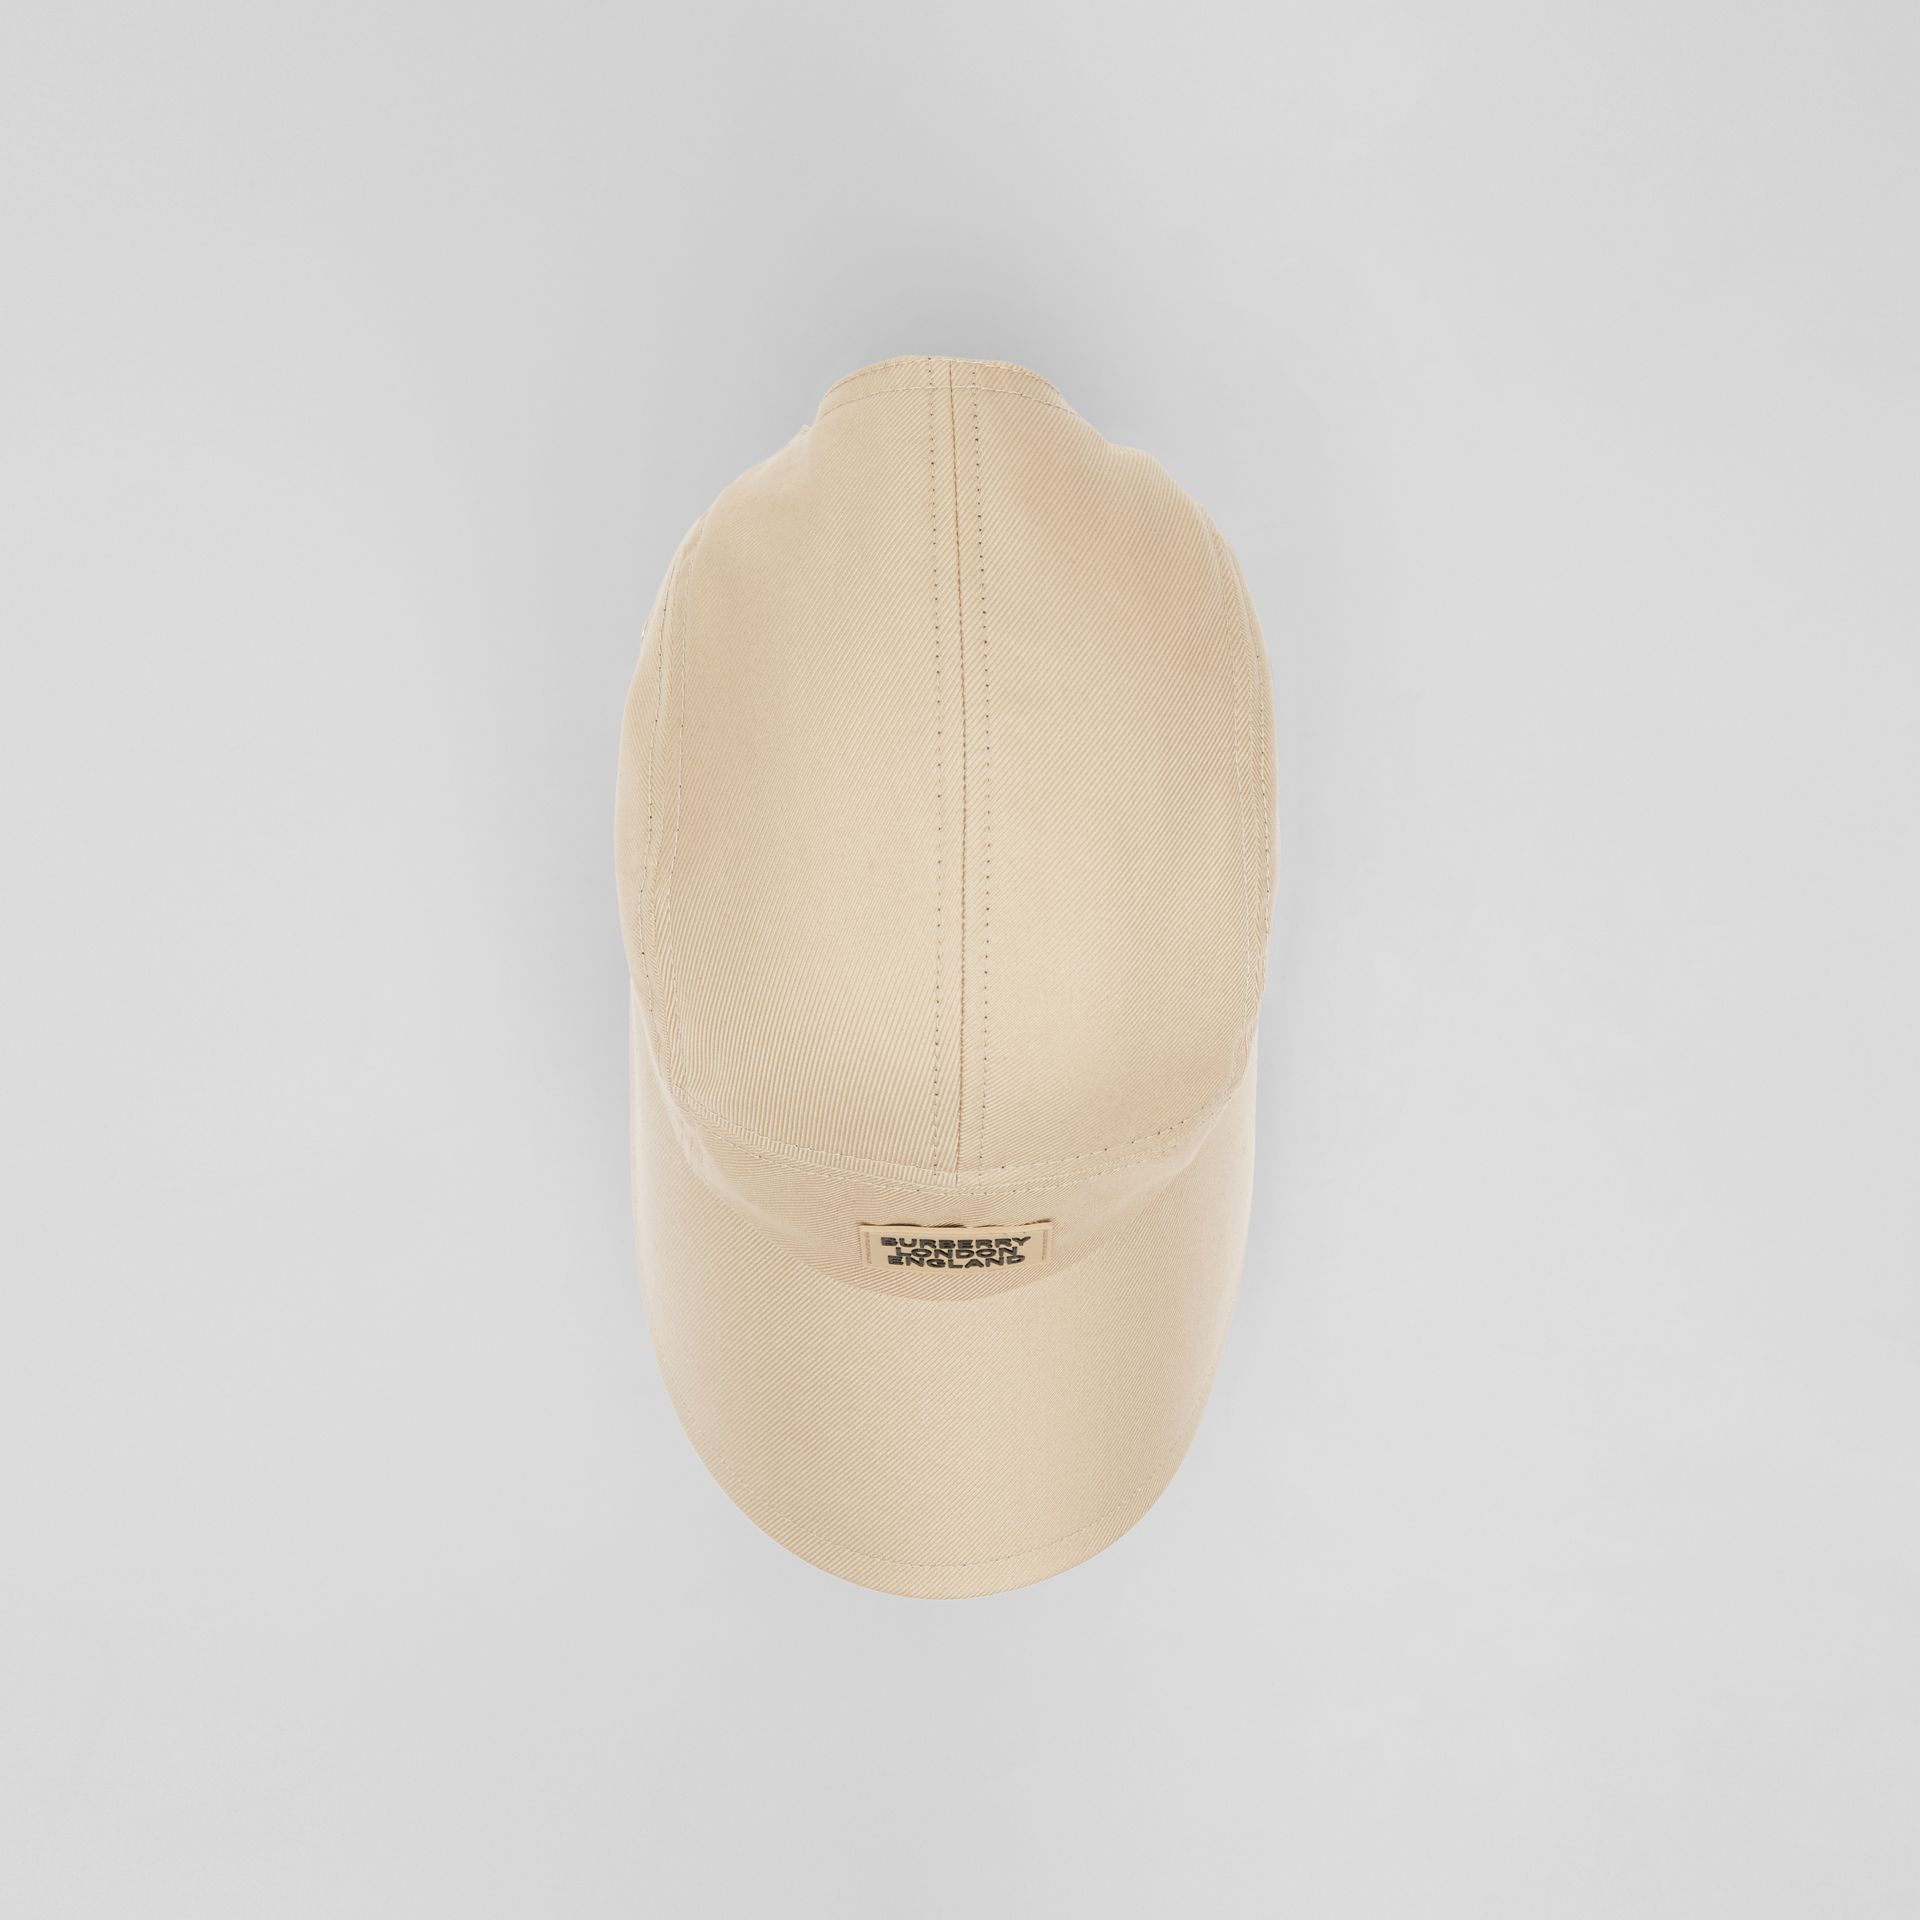 Logo Appliqué Cotton Twill Bonnet Cap in Soft Fawn | Burberry - gallery image 4